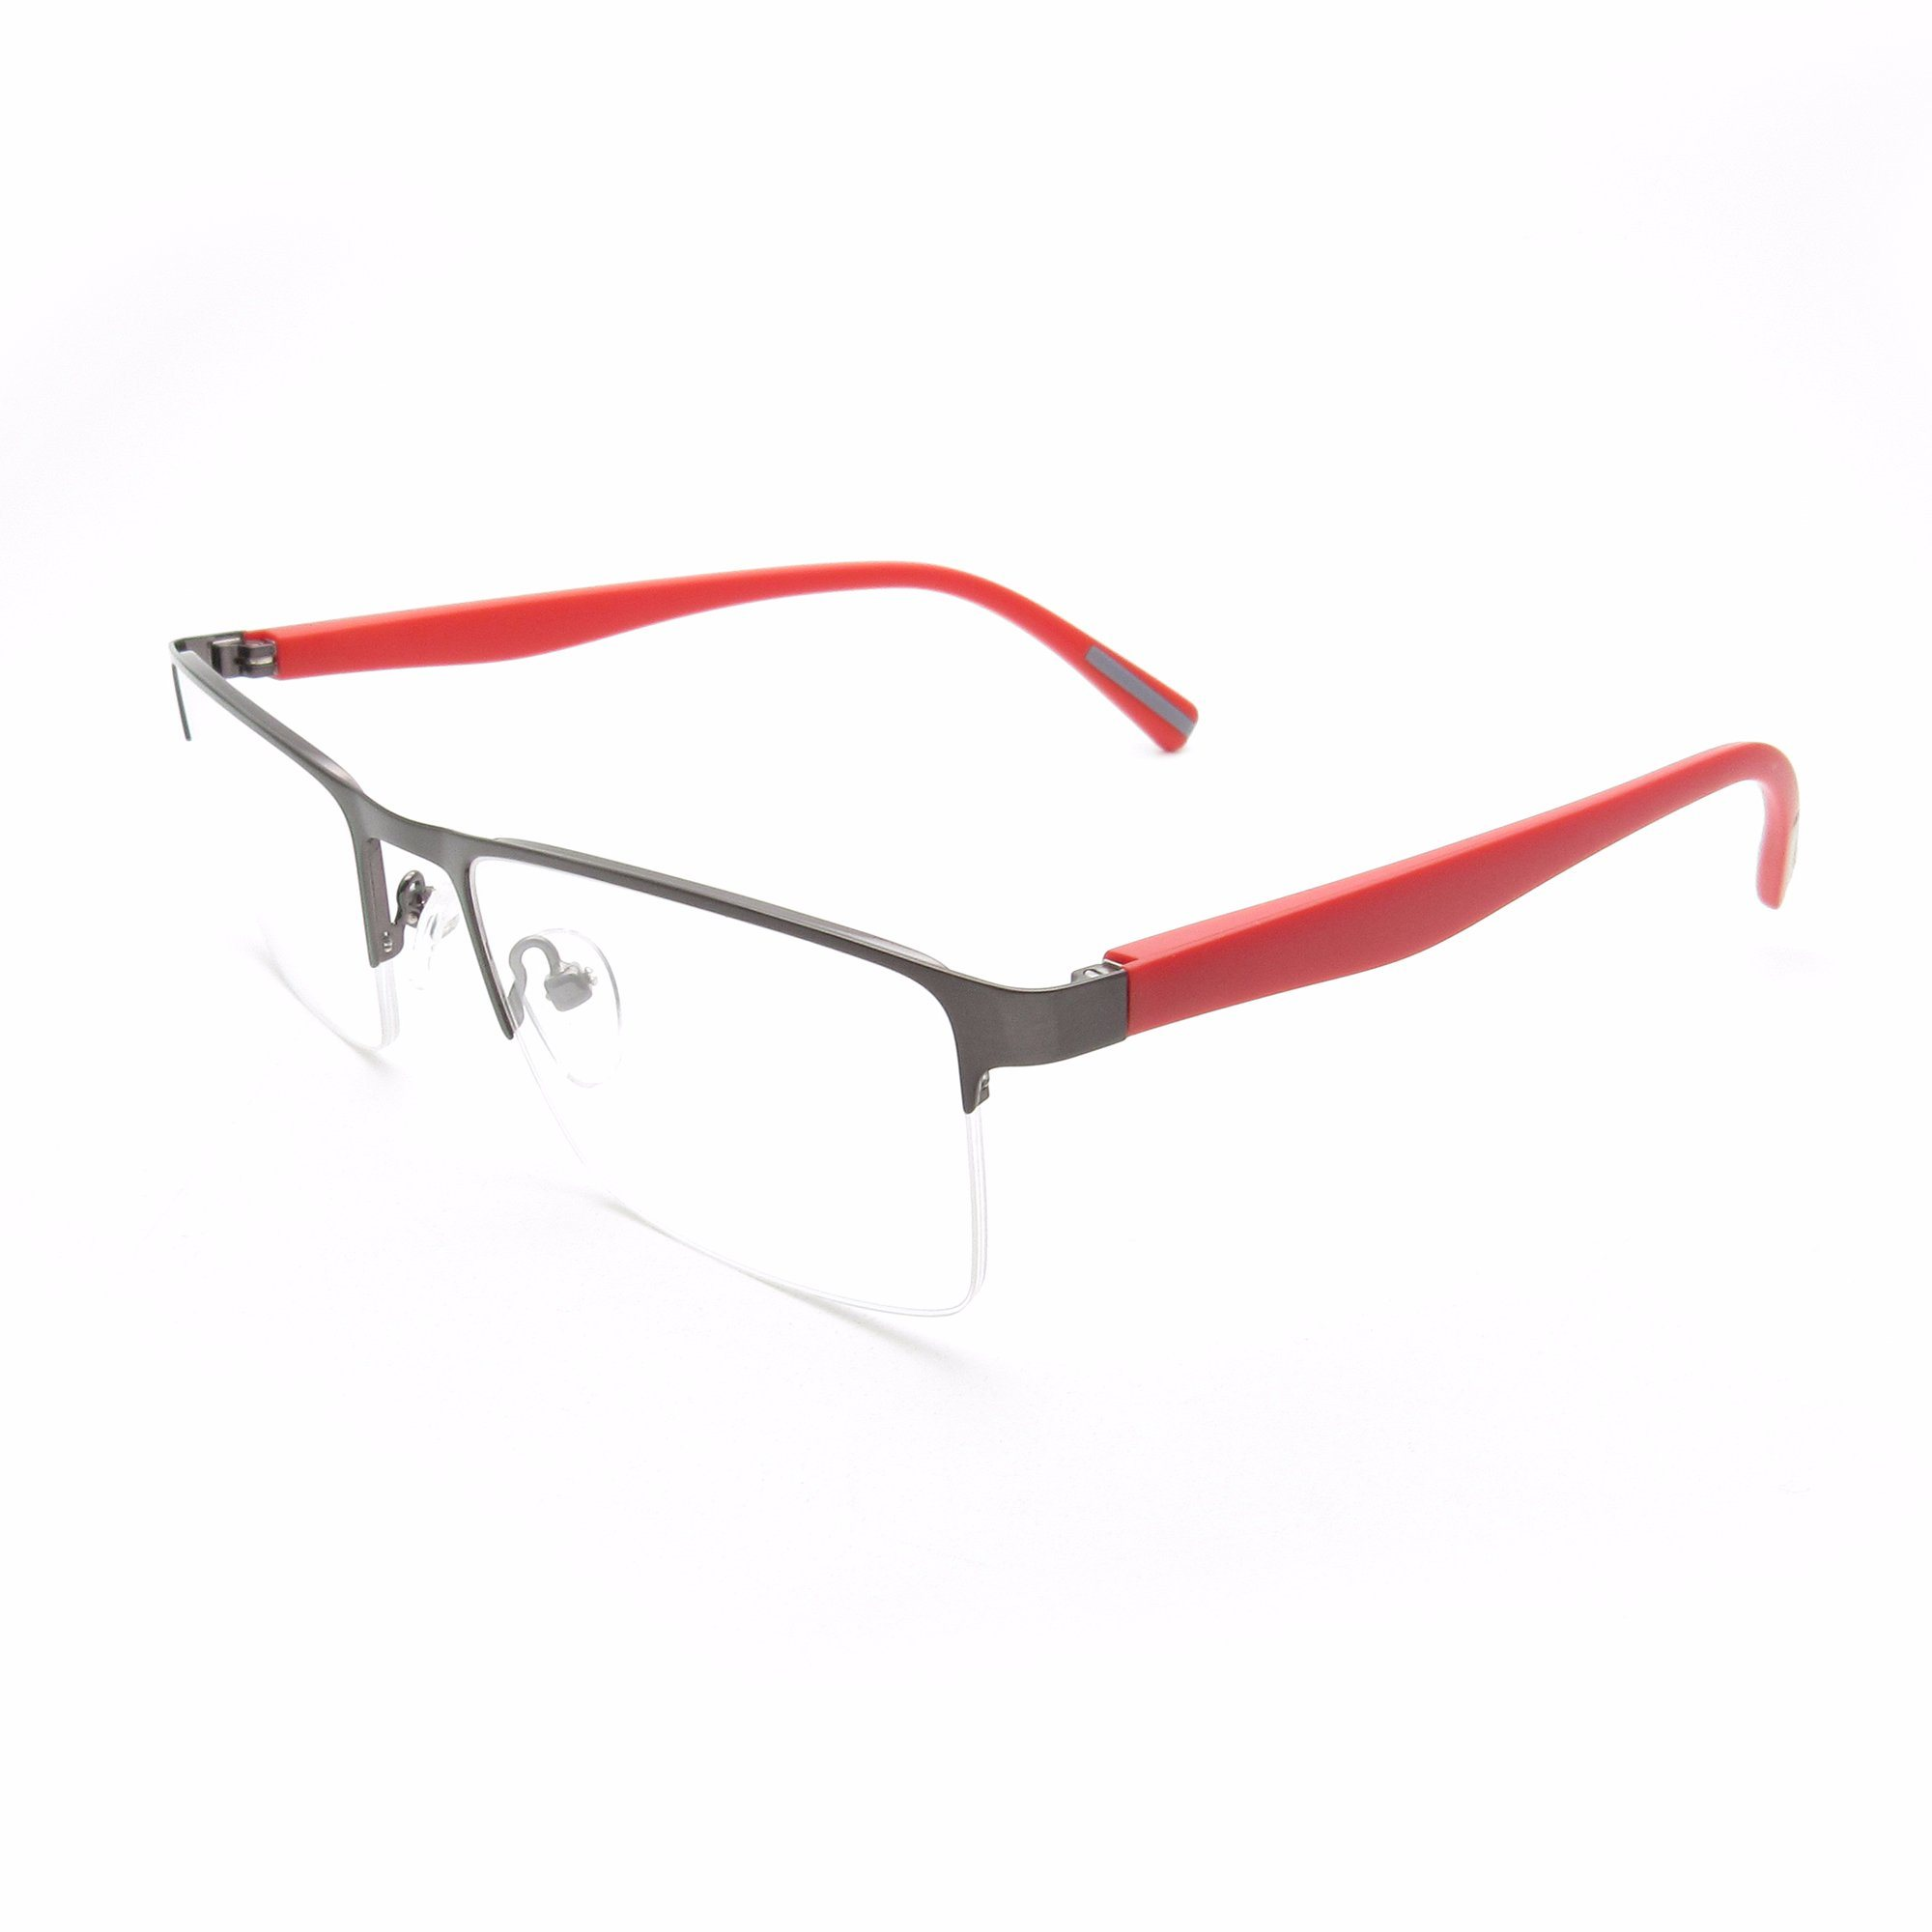 Supplier Direct Hq0217 Fashion Trend Comfortable Nose Pad Optical Eyeglasses Frame